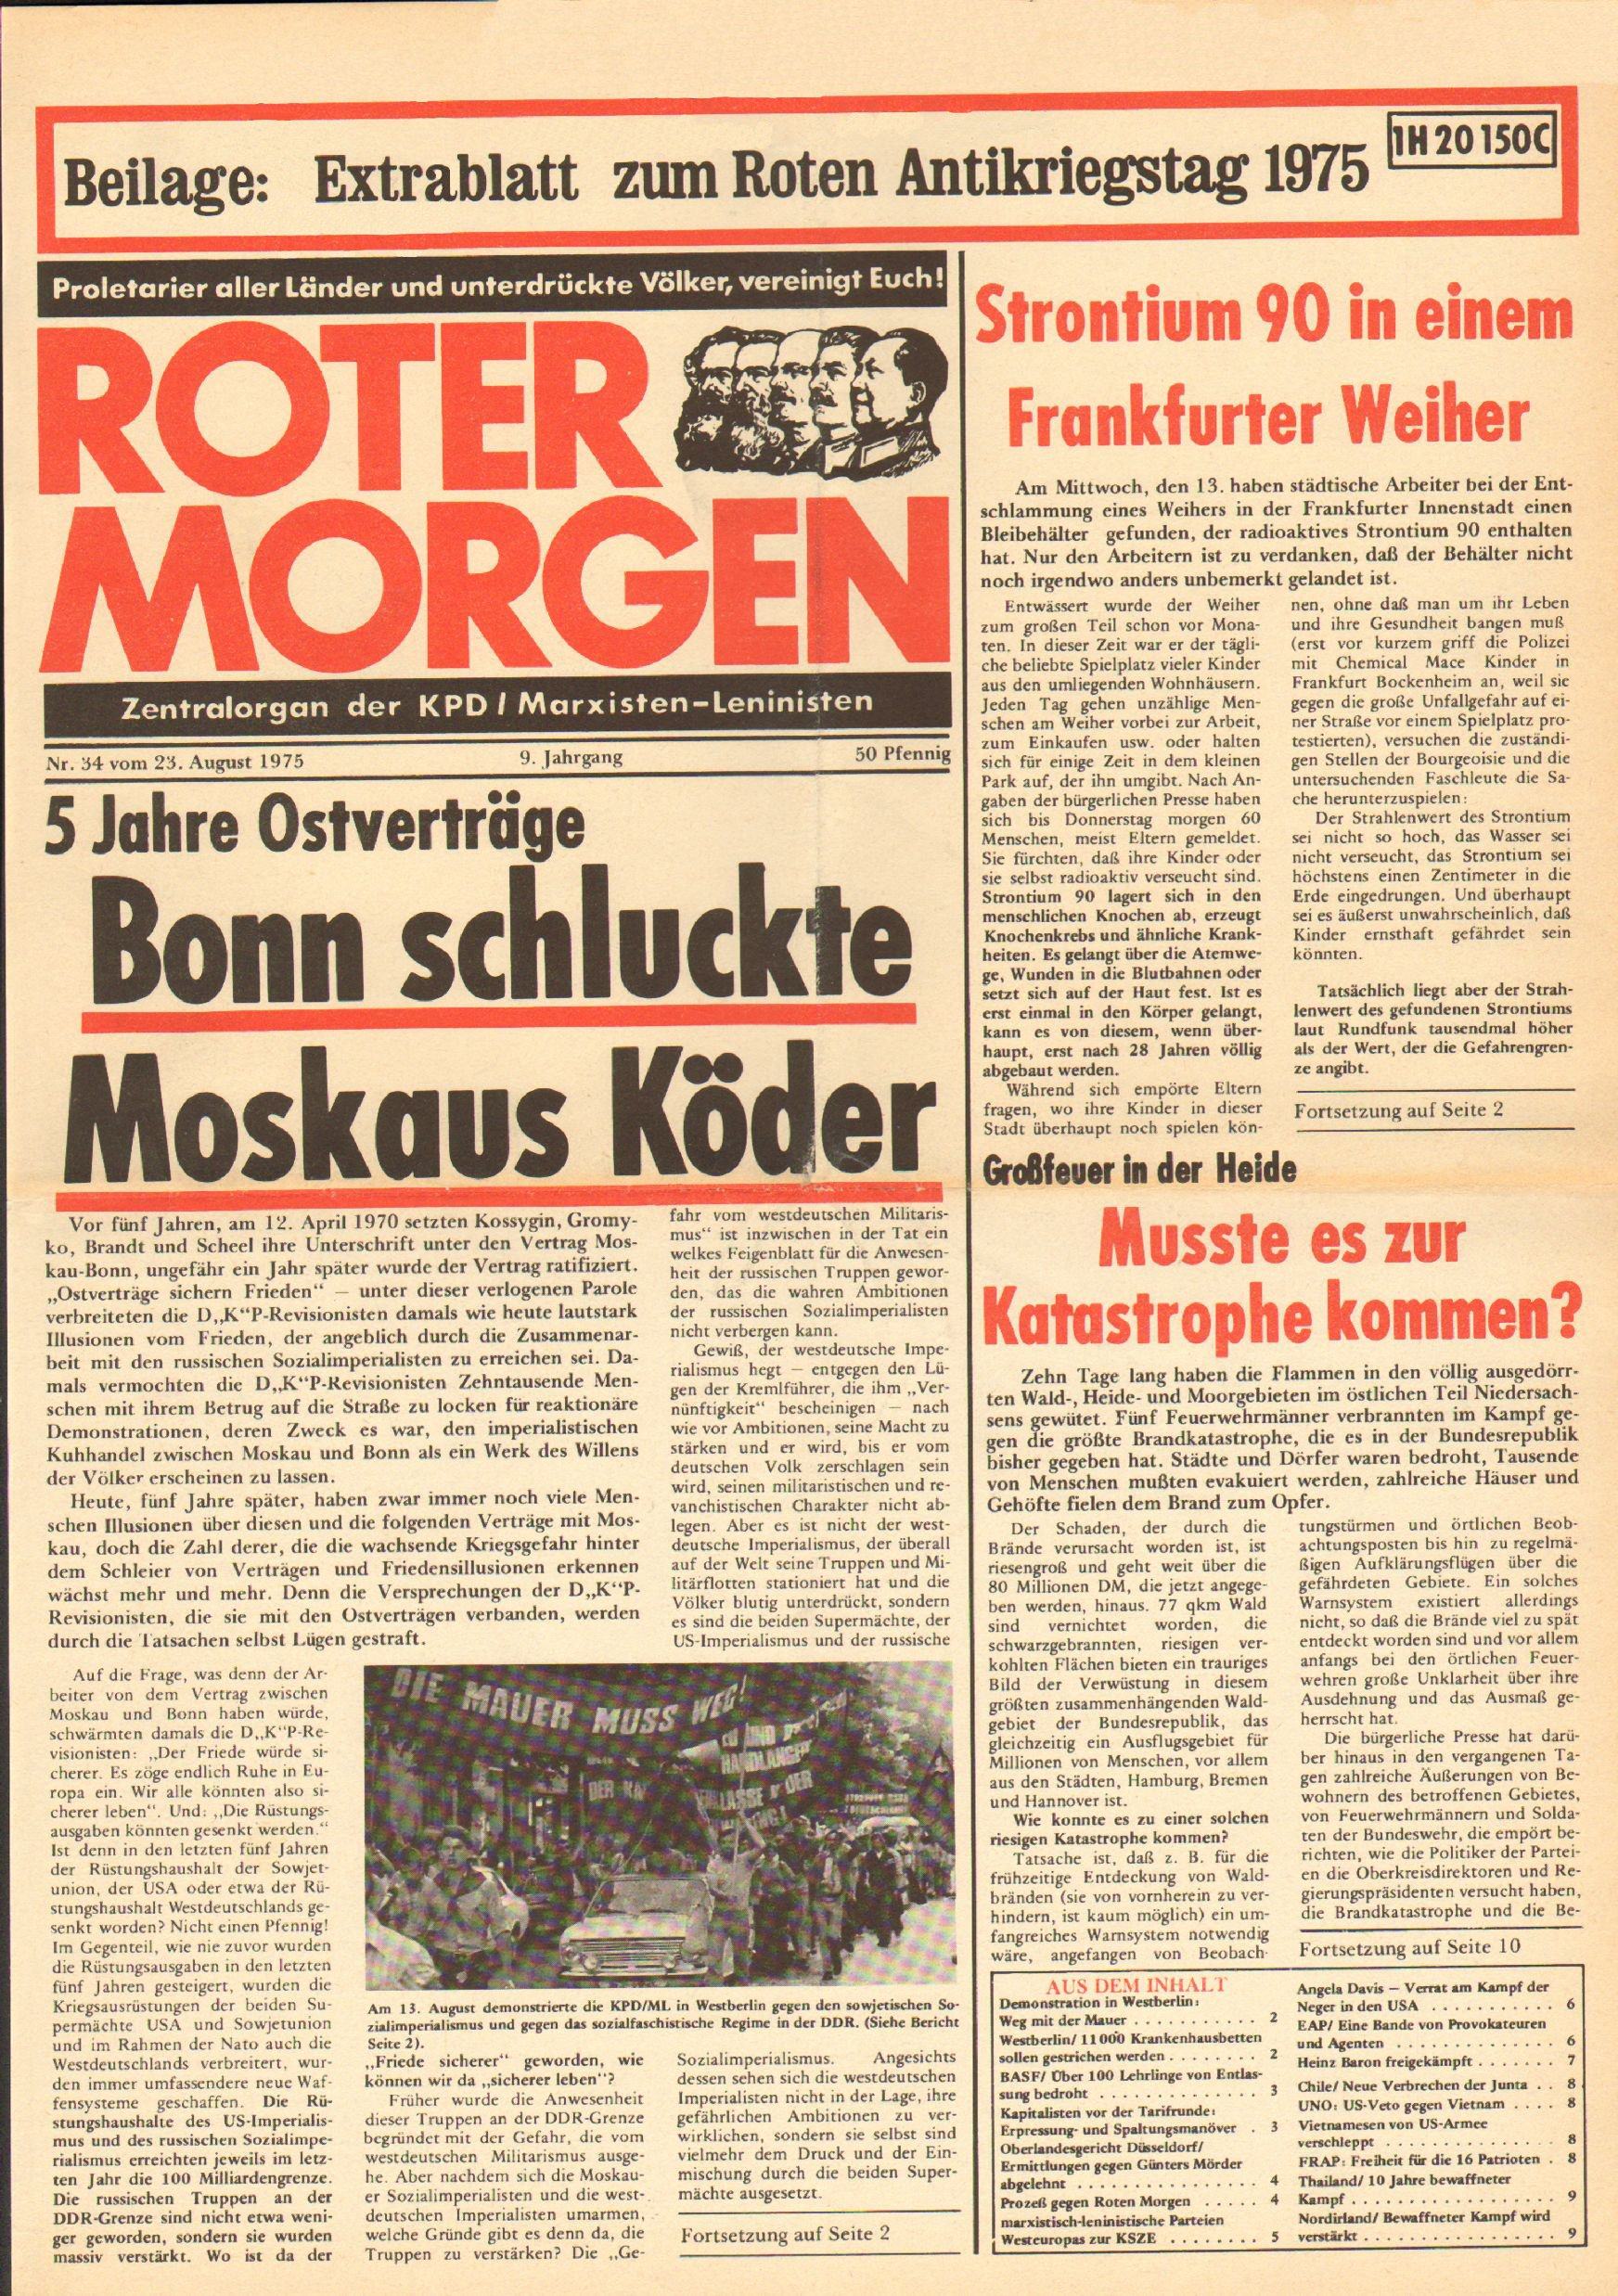 Roter Morgen, 9. Jg., 23. August 1975, Nr. 34, Seite 1